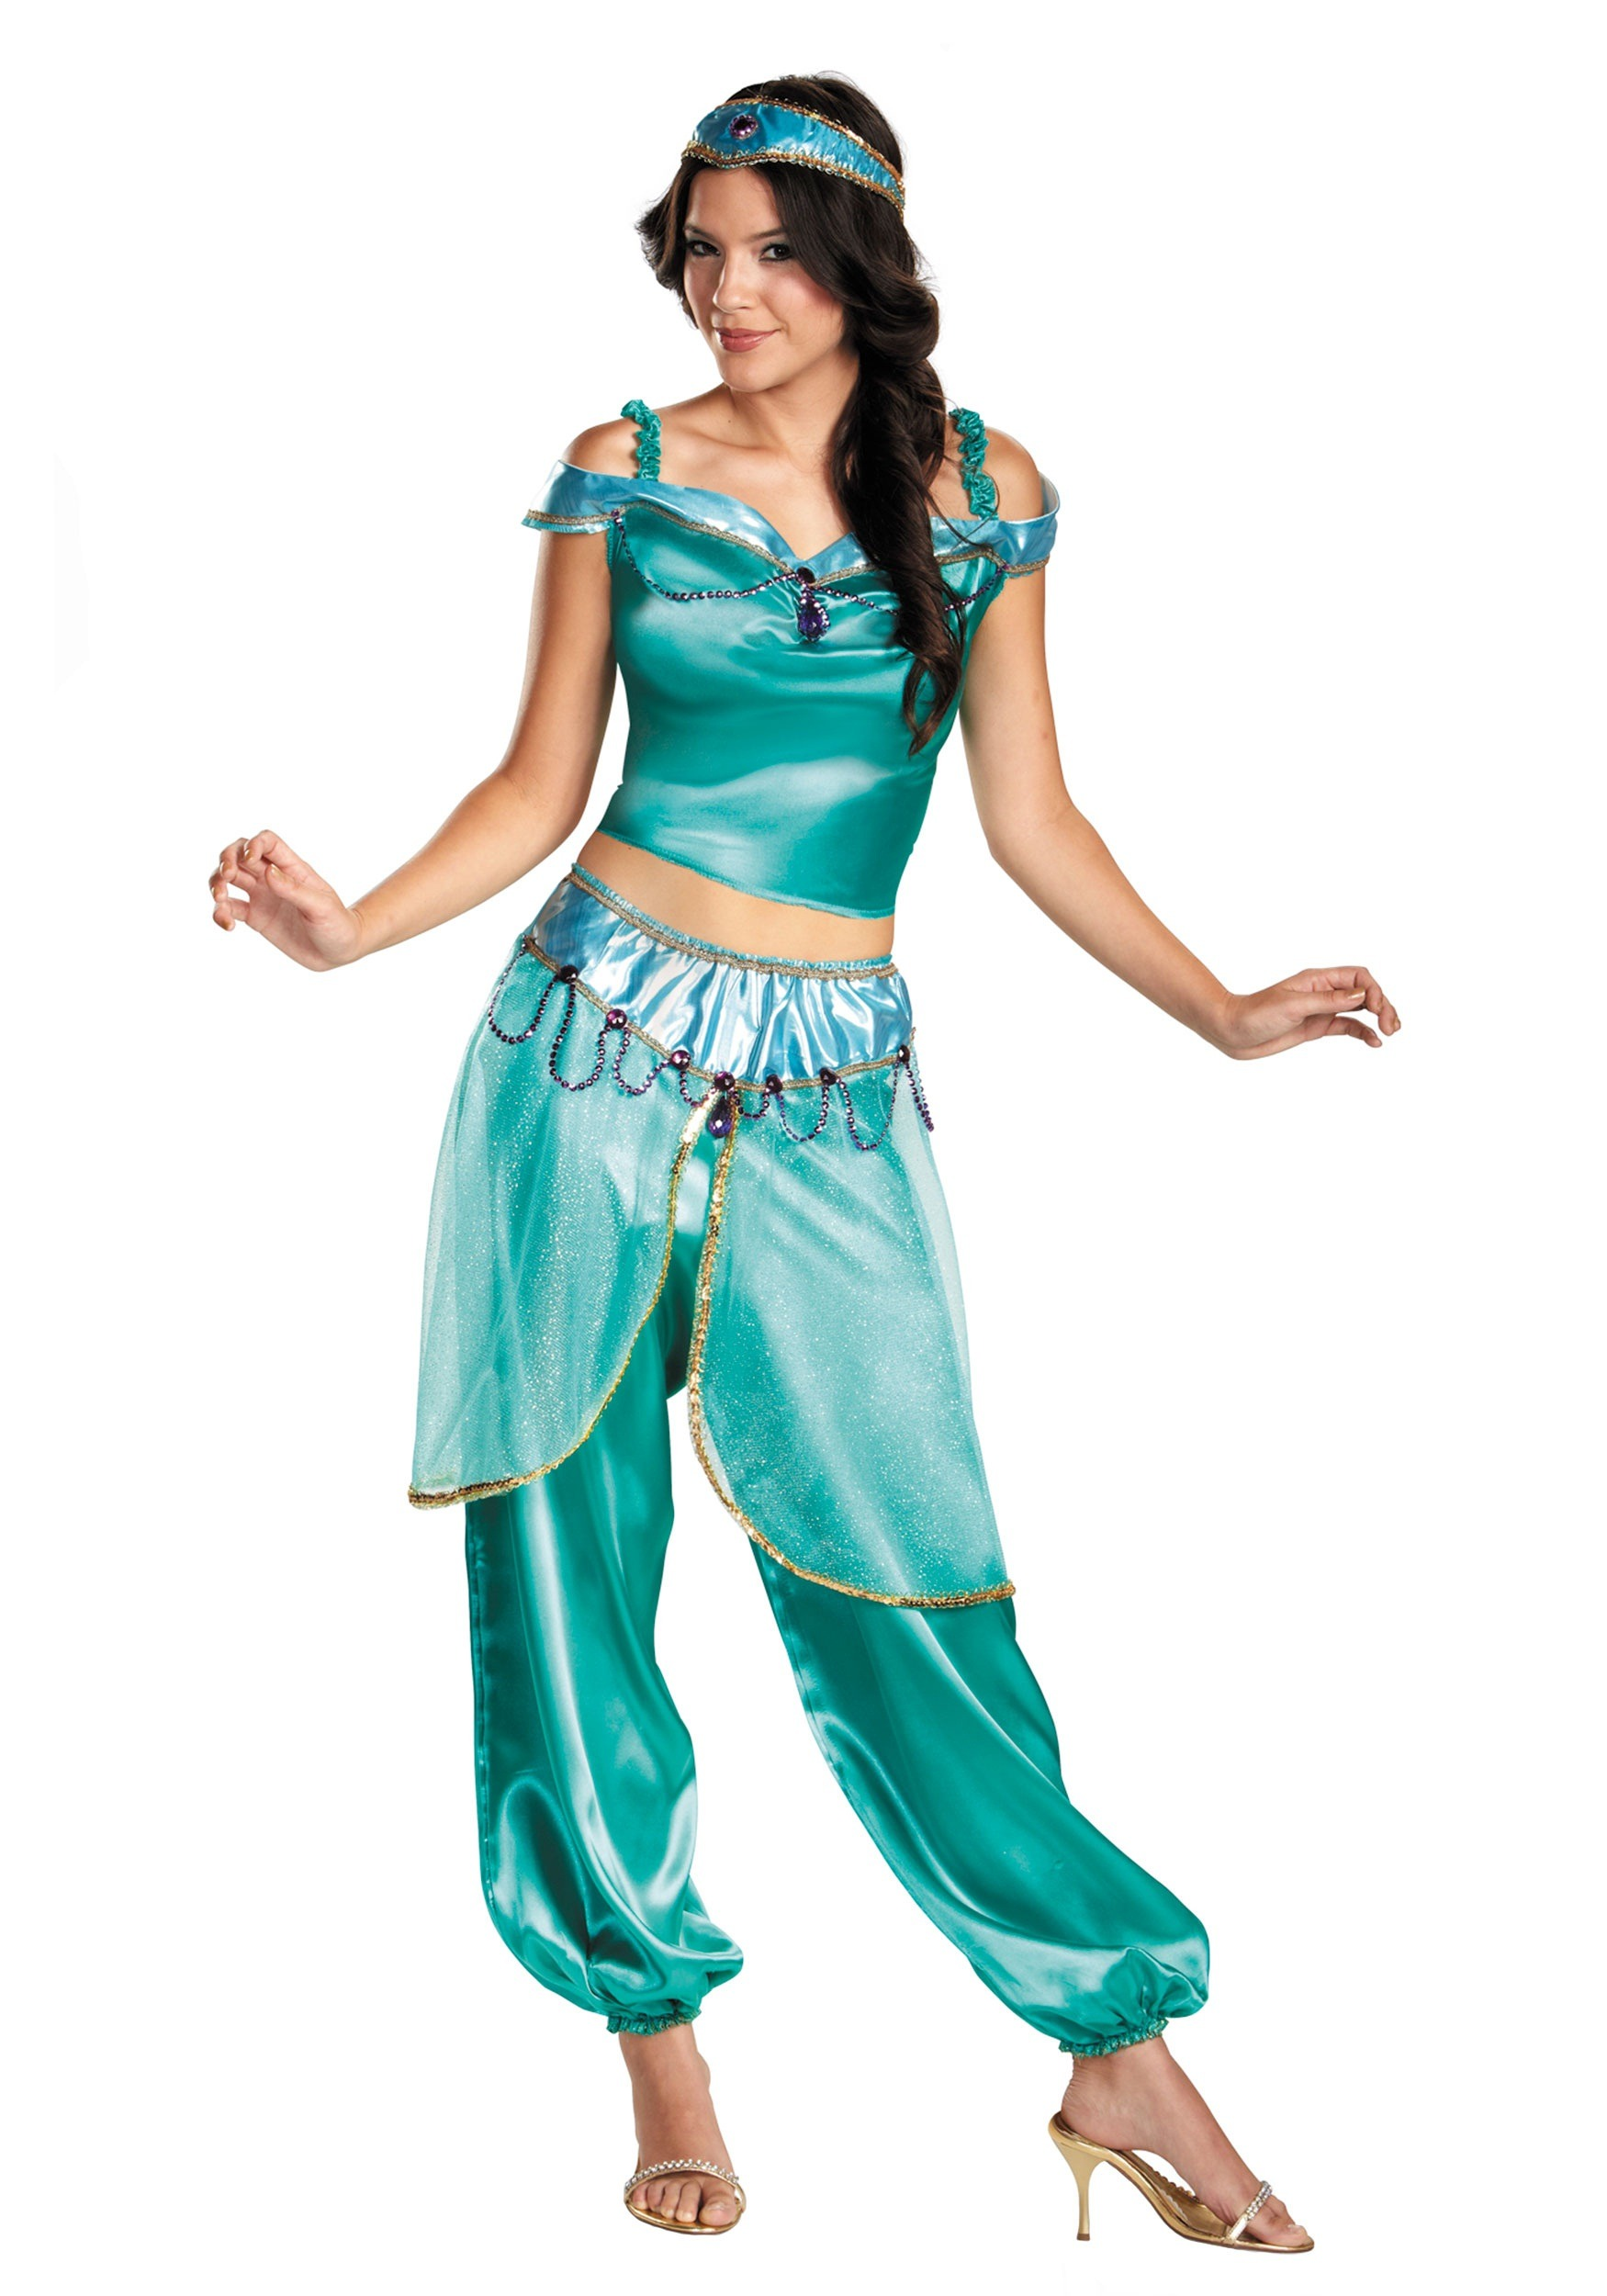 Sexy belly dancing outfits